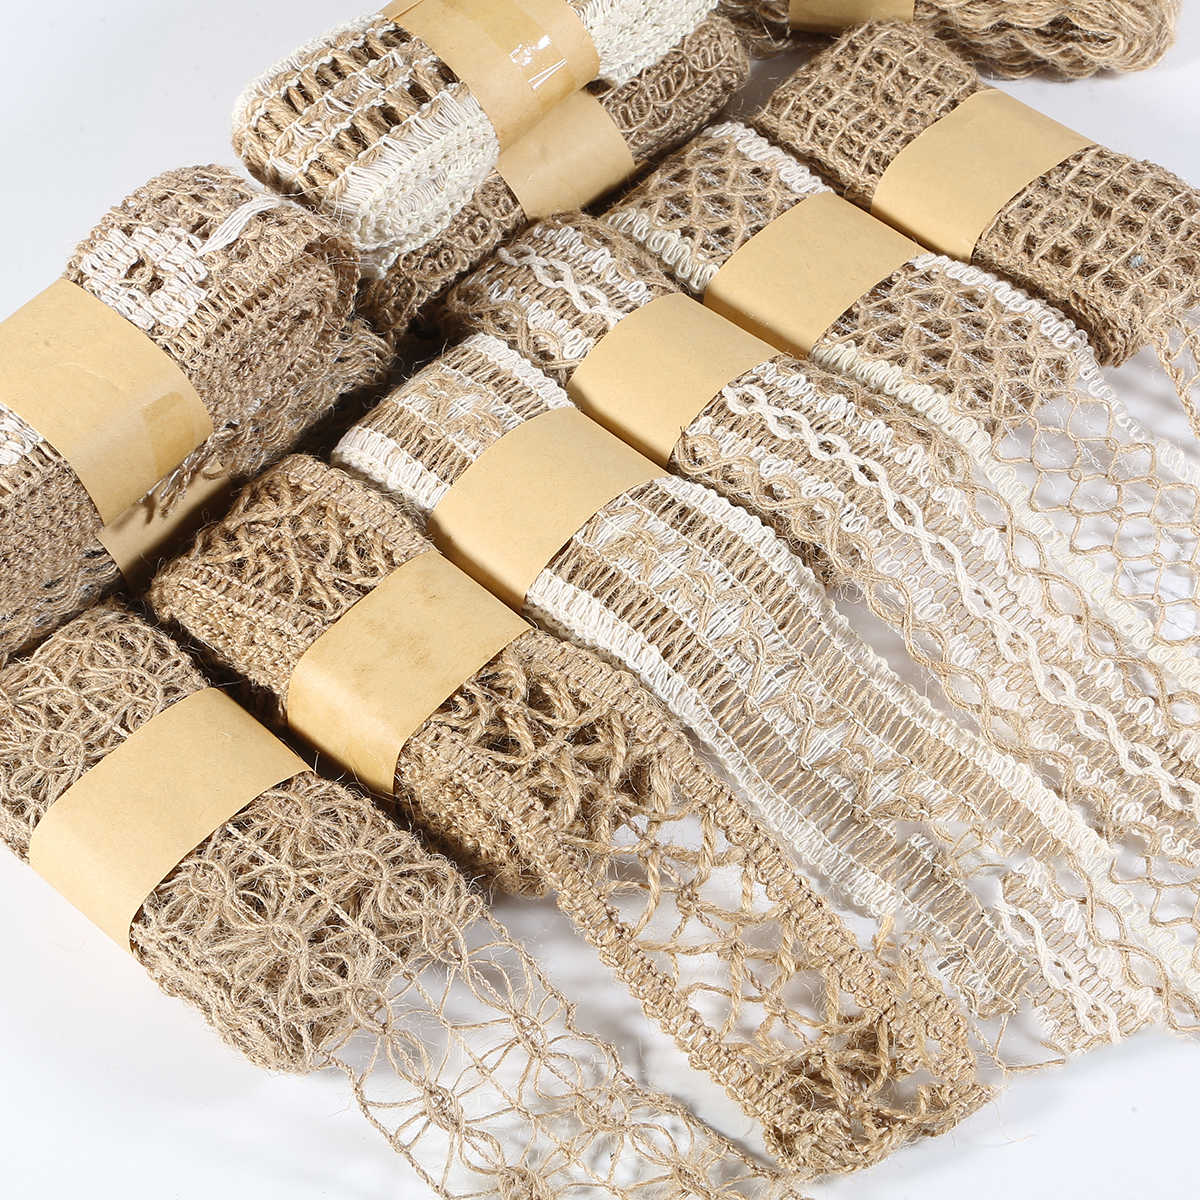 Burlap Flat Cords Hessian Vintage Rustic Hemp Jute Rope Christmas Wedding Party Centerpieces Decoration Gift Wrapping Ribbons